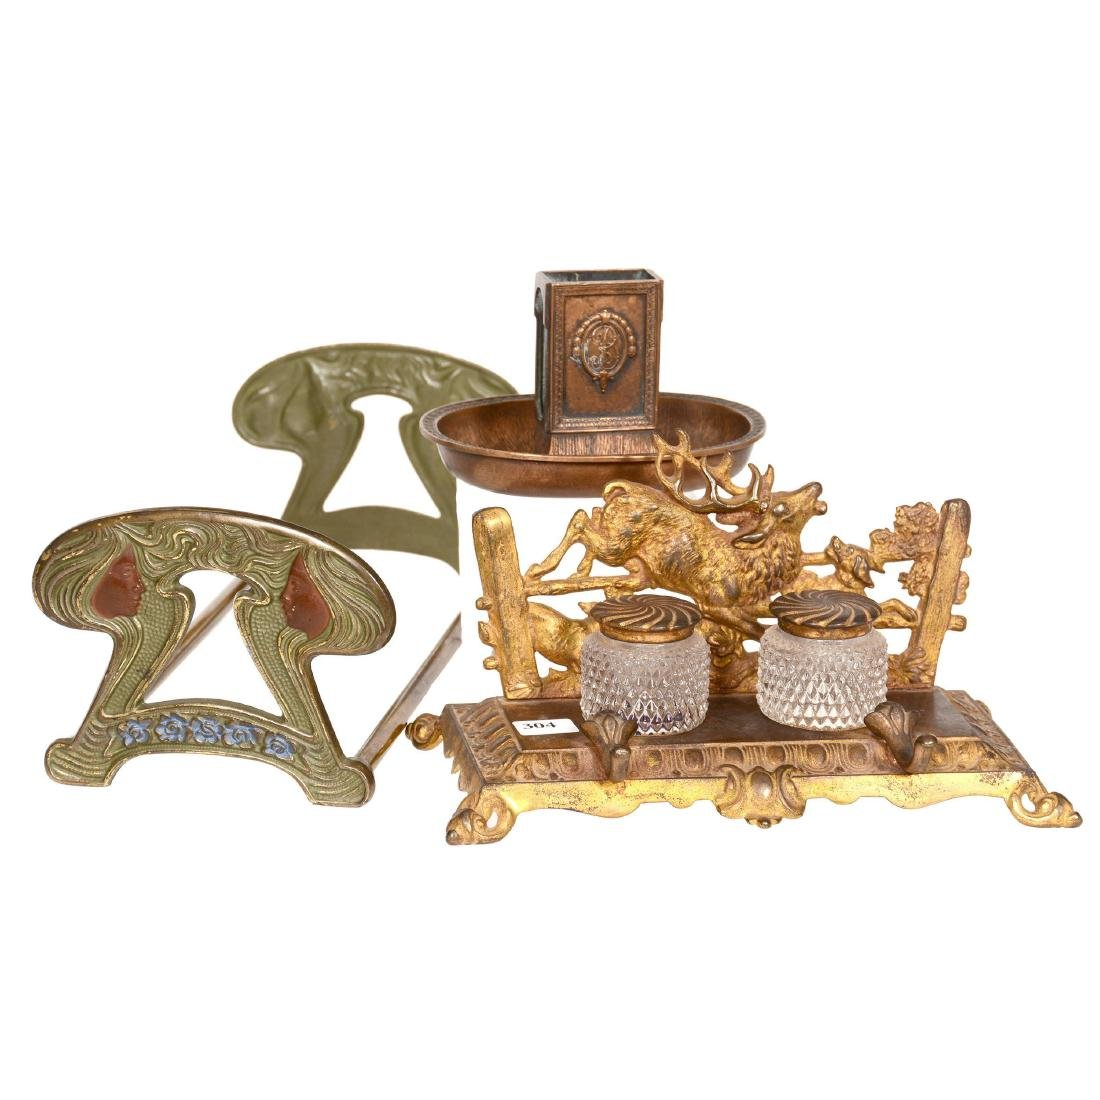 (3) Embossed Metal Desk Items